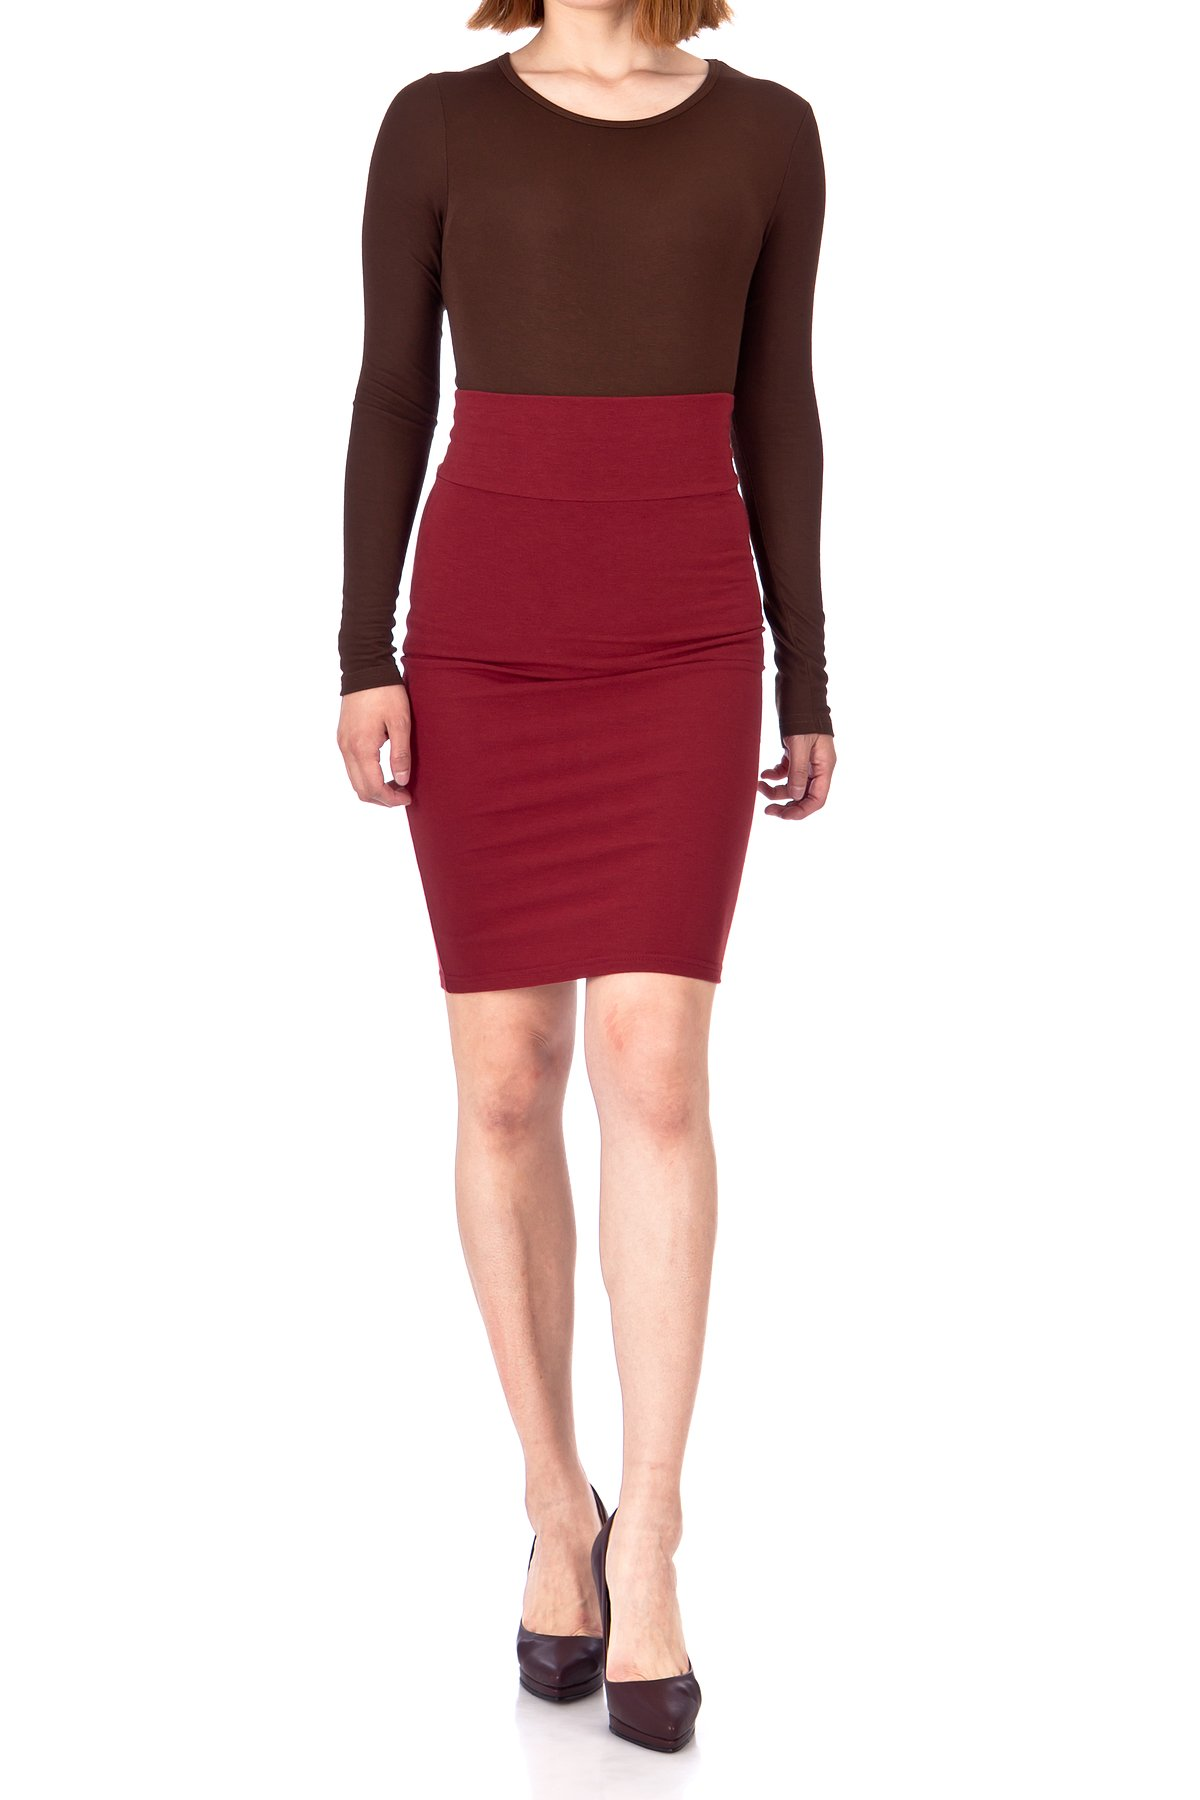 Every Occasion Stretch Pull on Wide High Waist Bodycon Pencil Knee Length Midi Skirt Burgundy 05